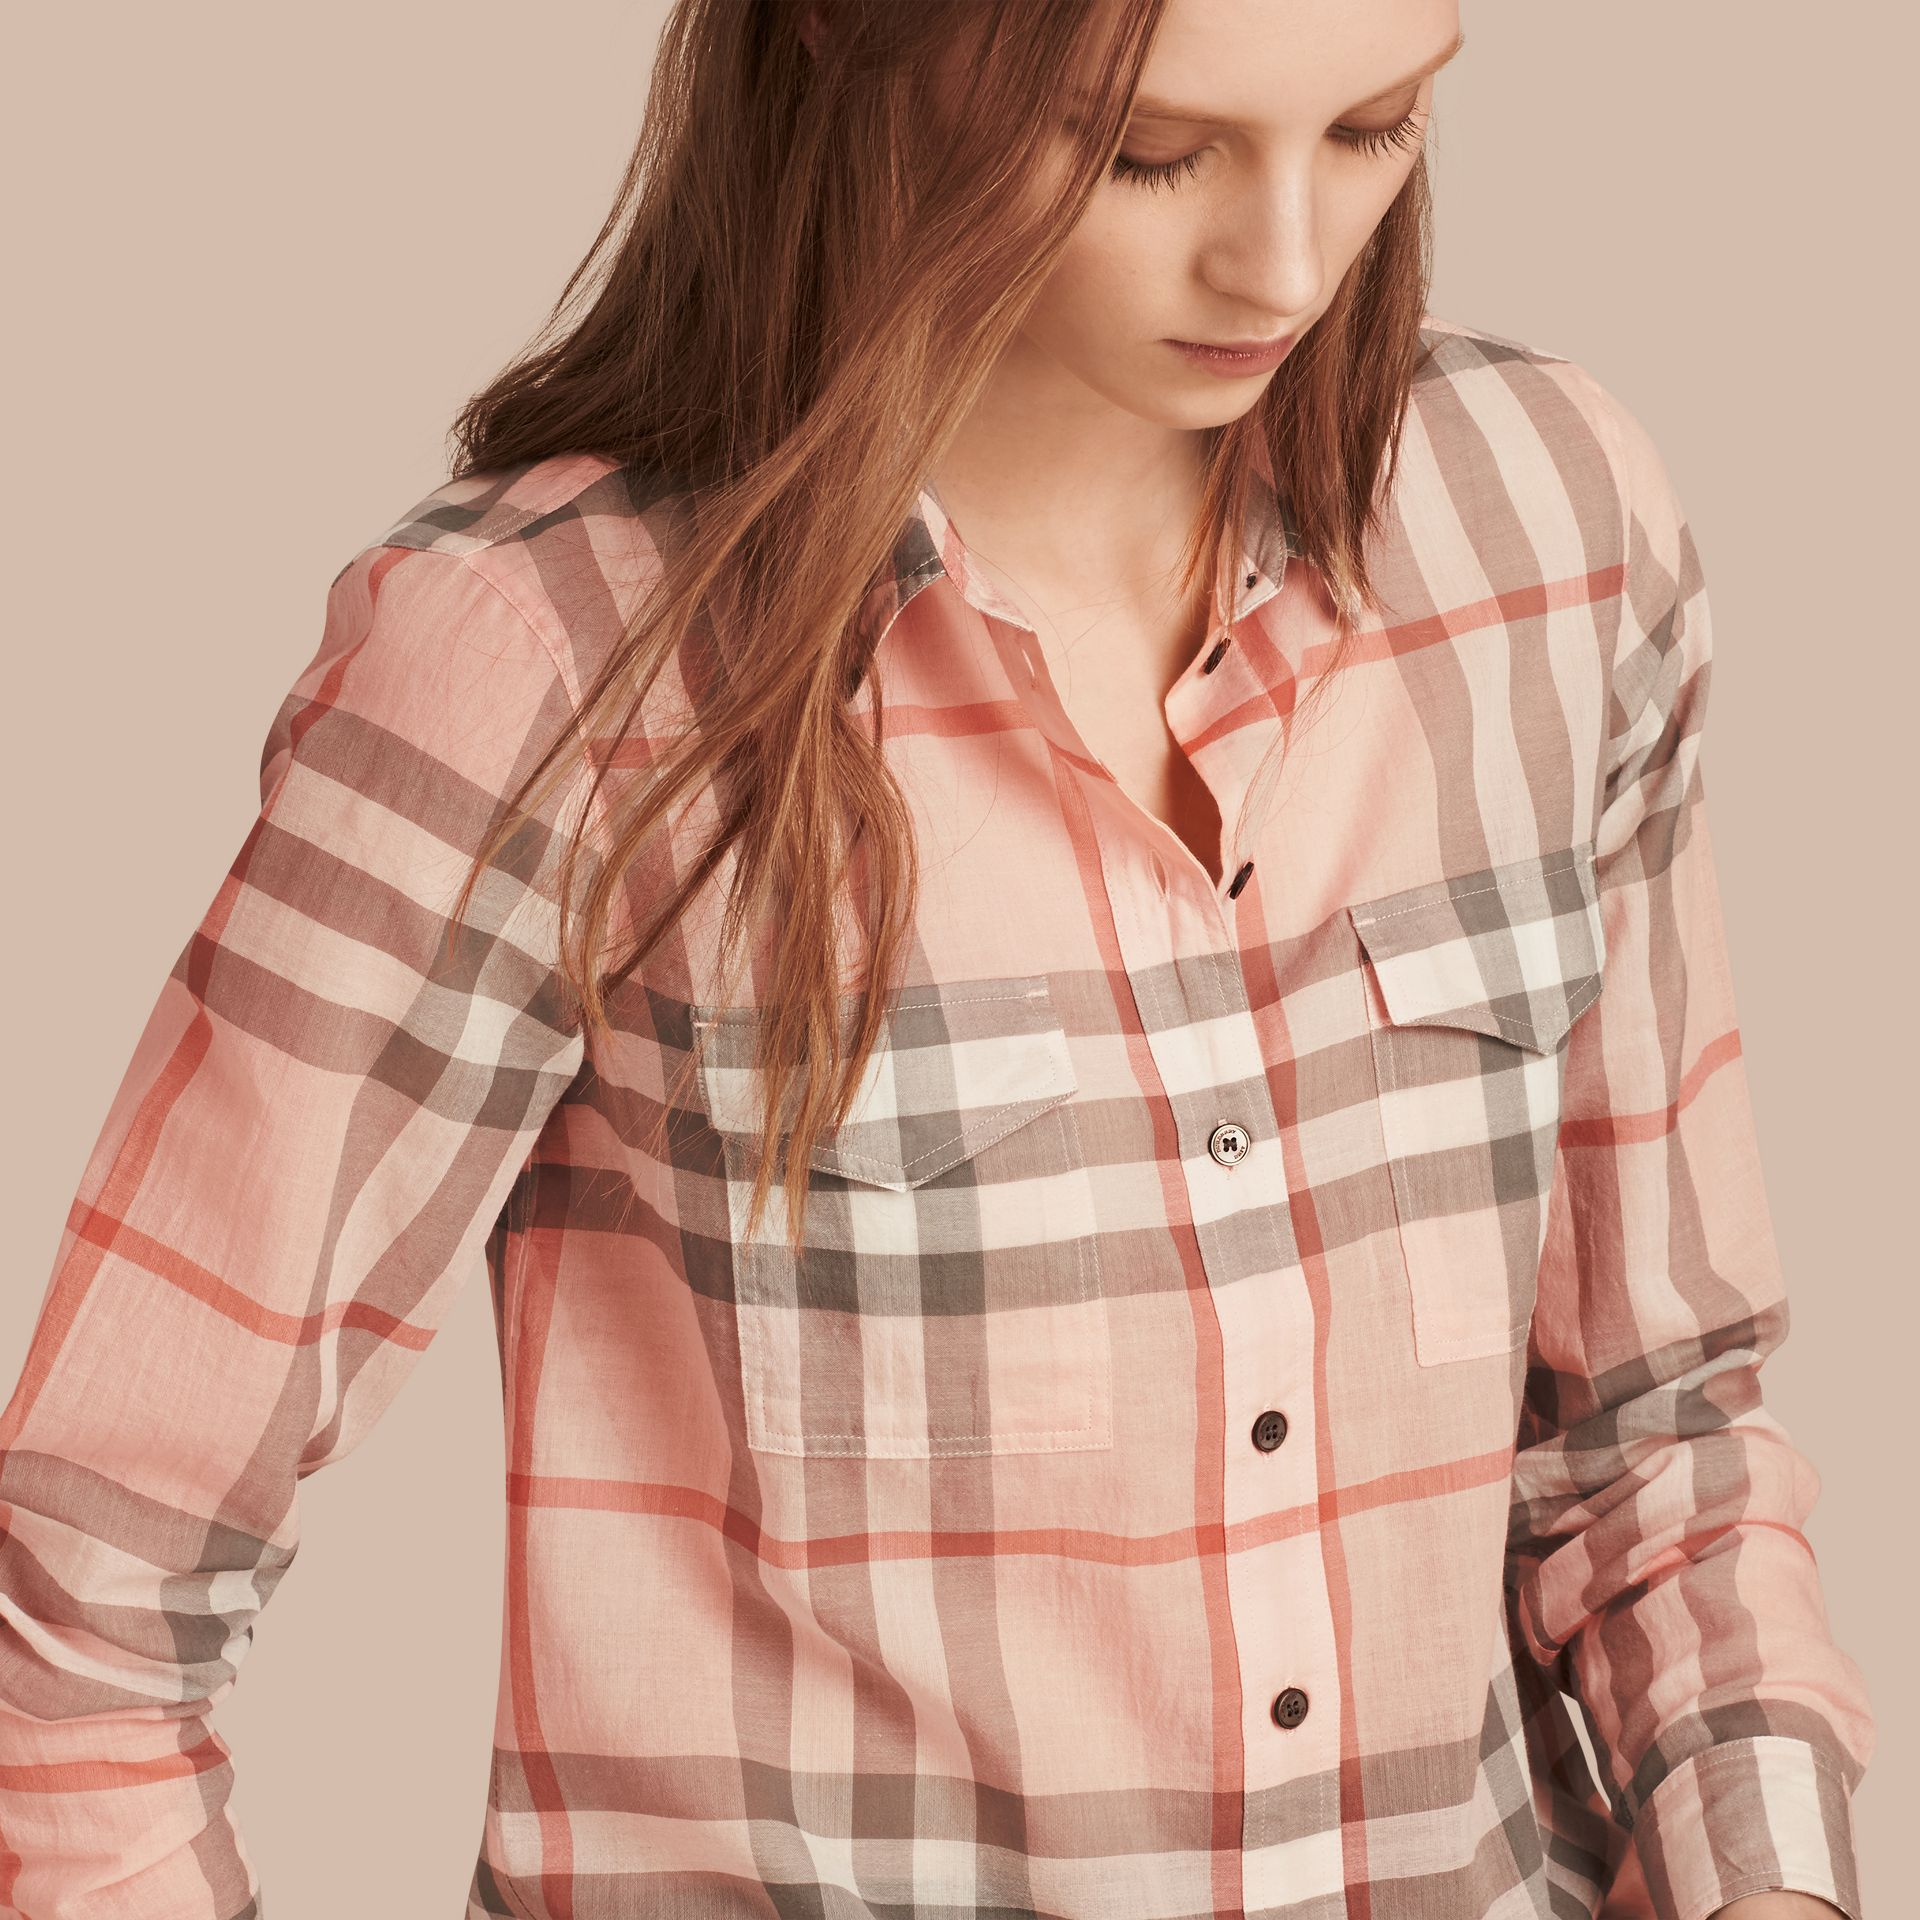 Pale apricot Check Cotton Shirt Pale Apricot - gallery image 2